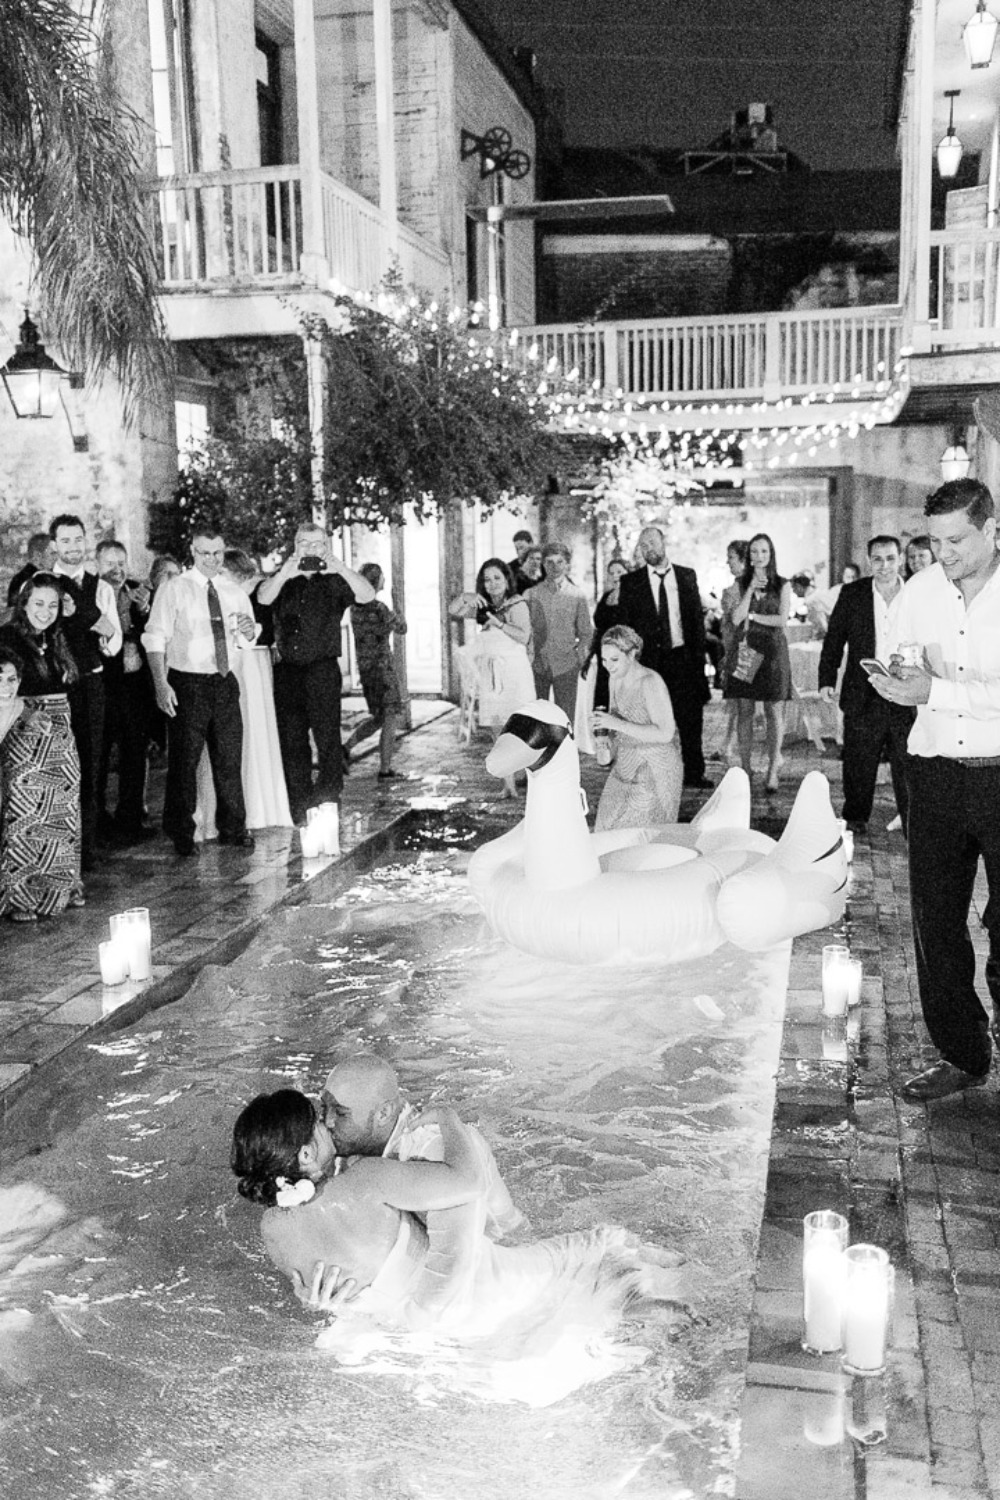 wet wedding kiss in the pool